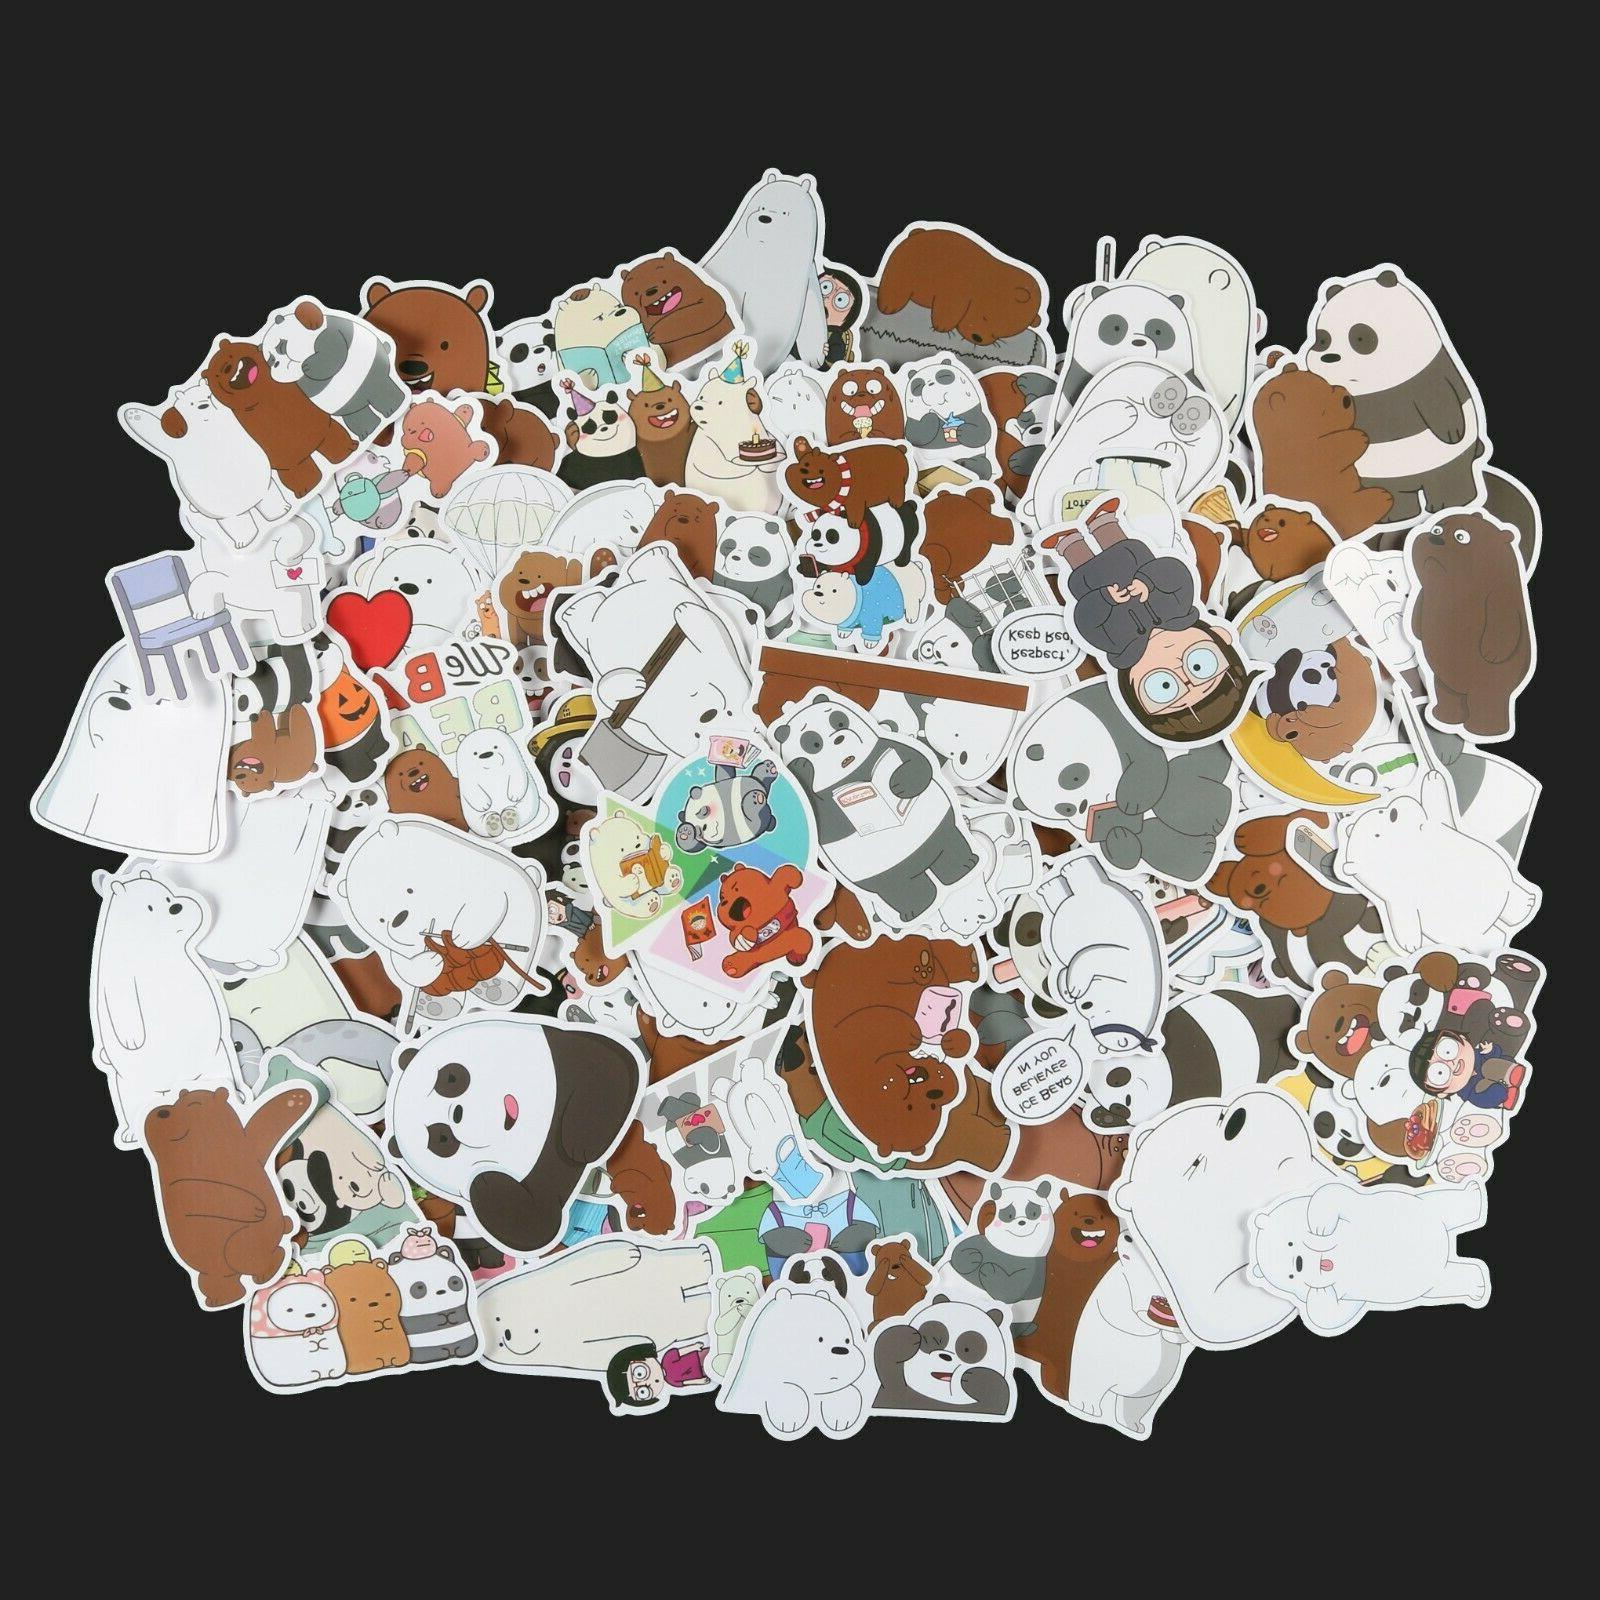 100pcs We Bare Bears Stickers Pack, Ice Stickers, Cute